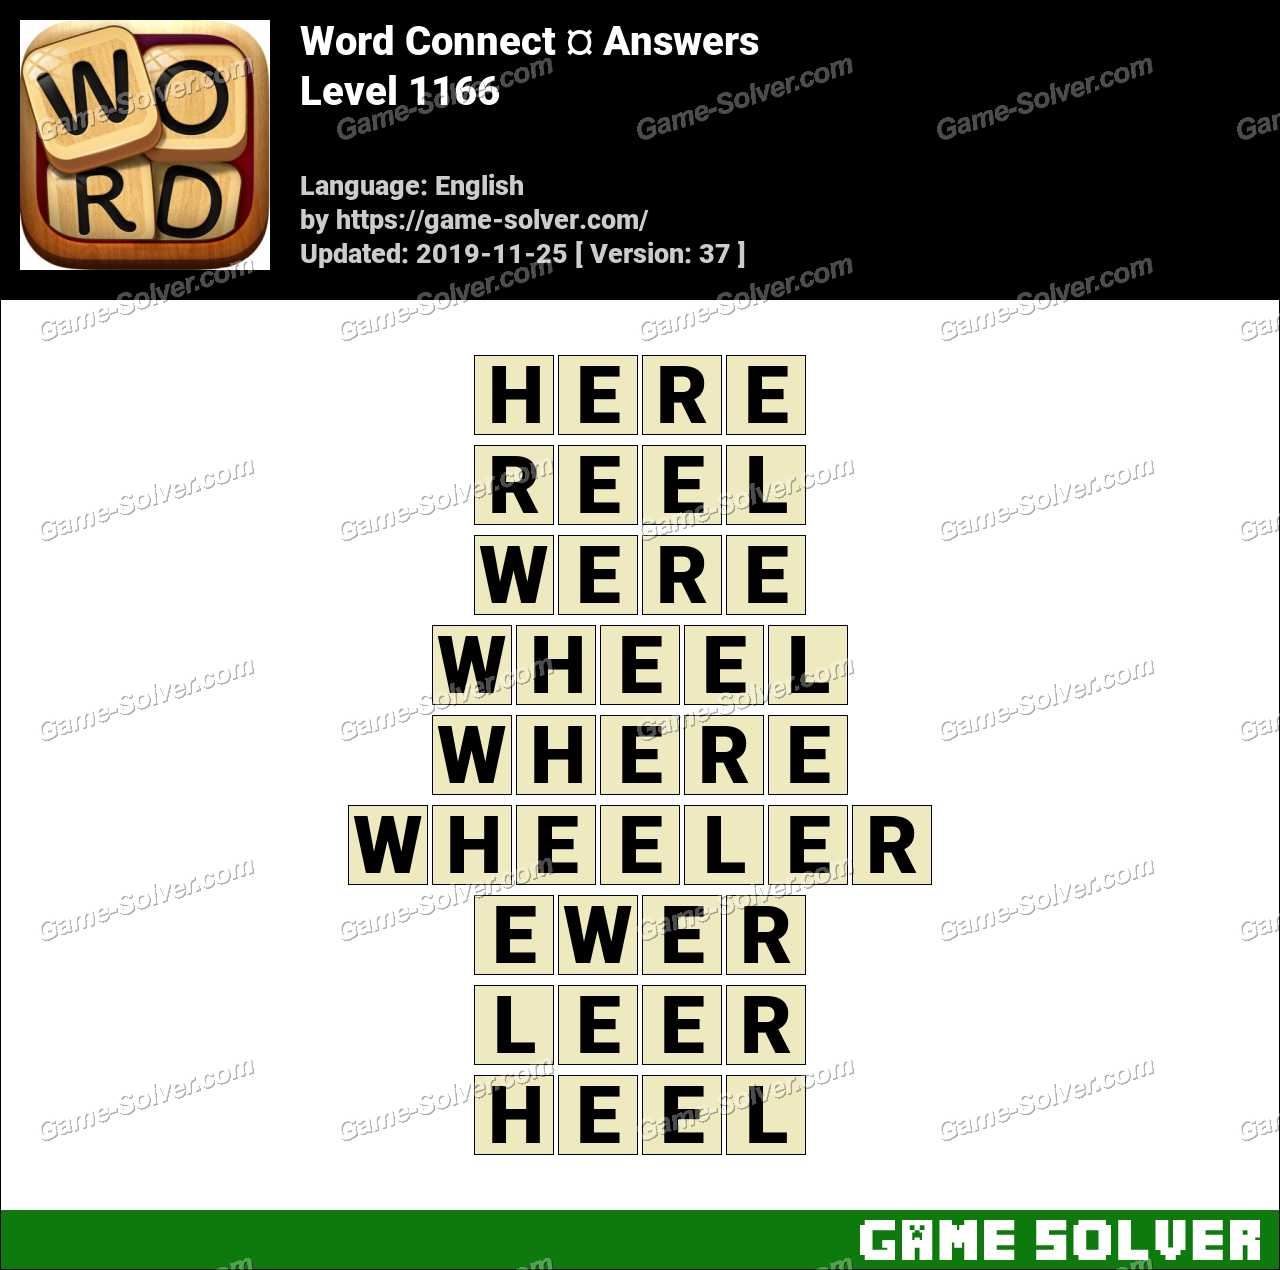 Word Connect Level 1166 Answers